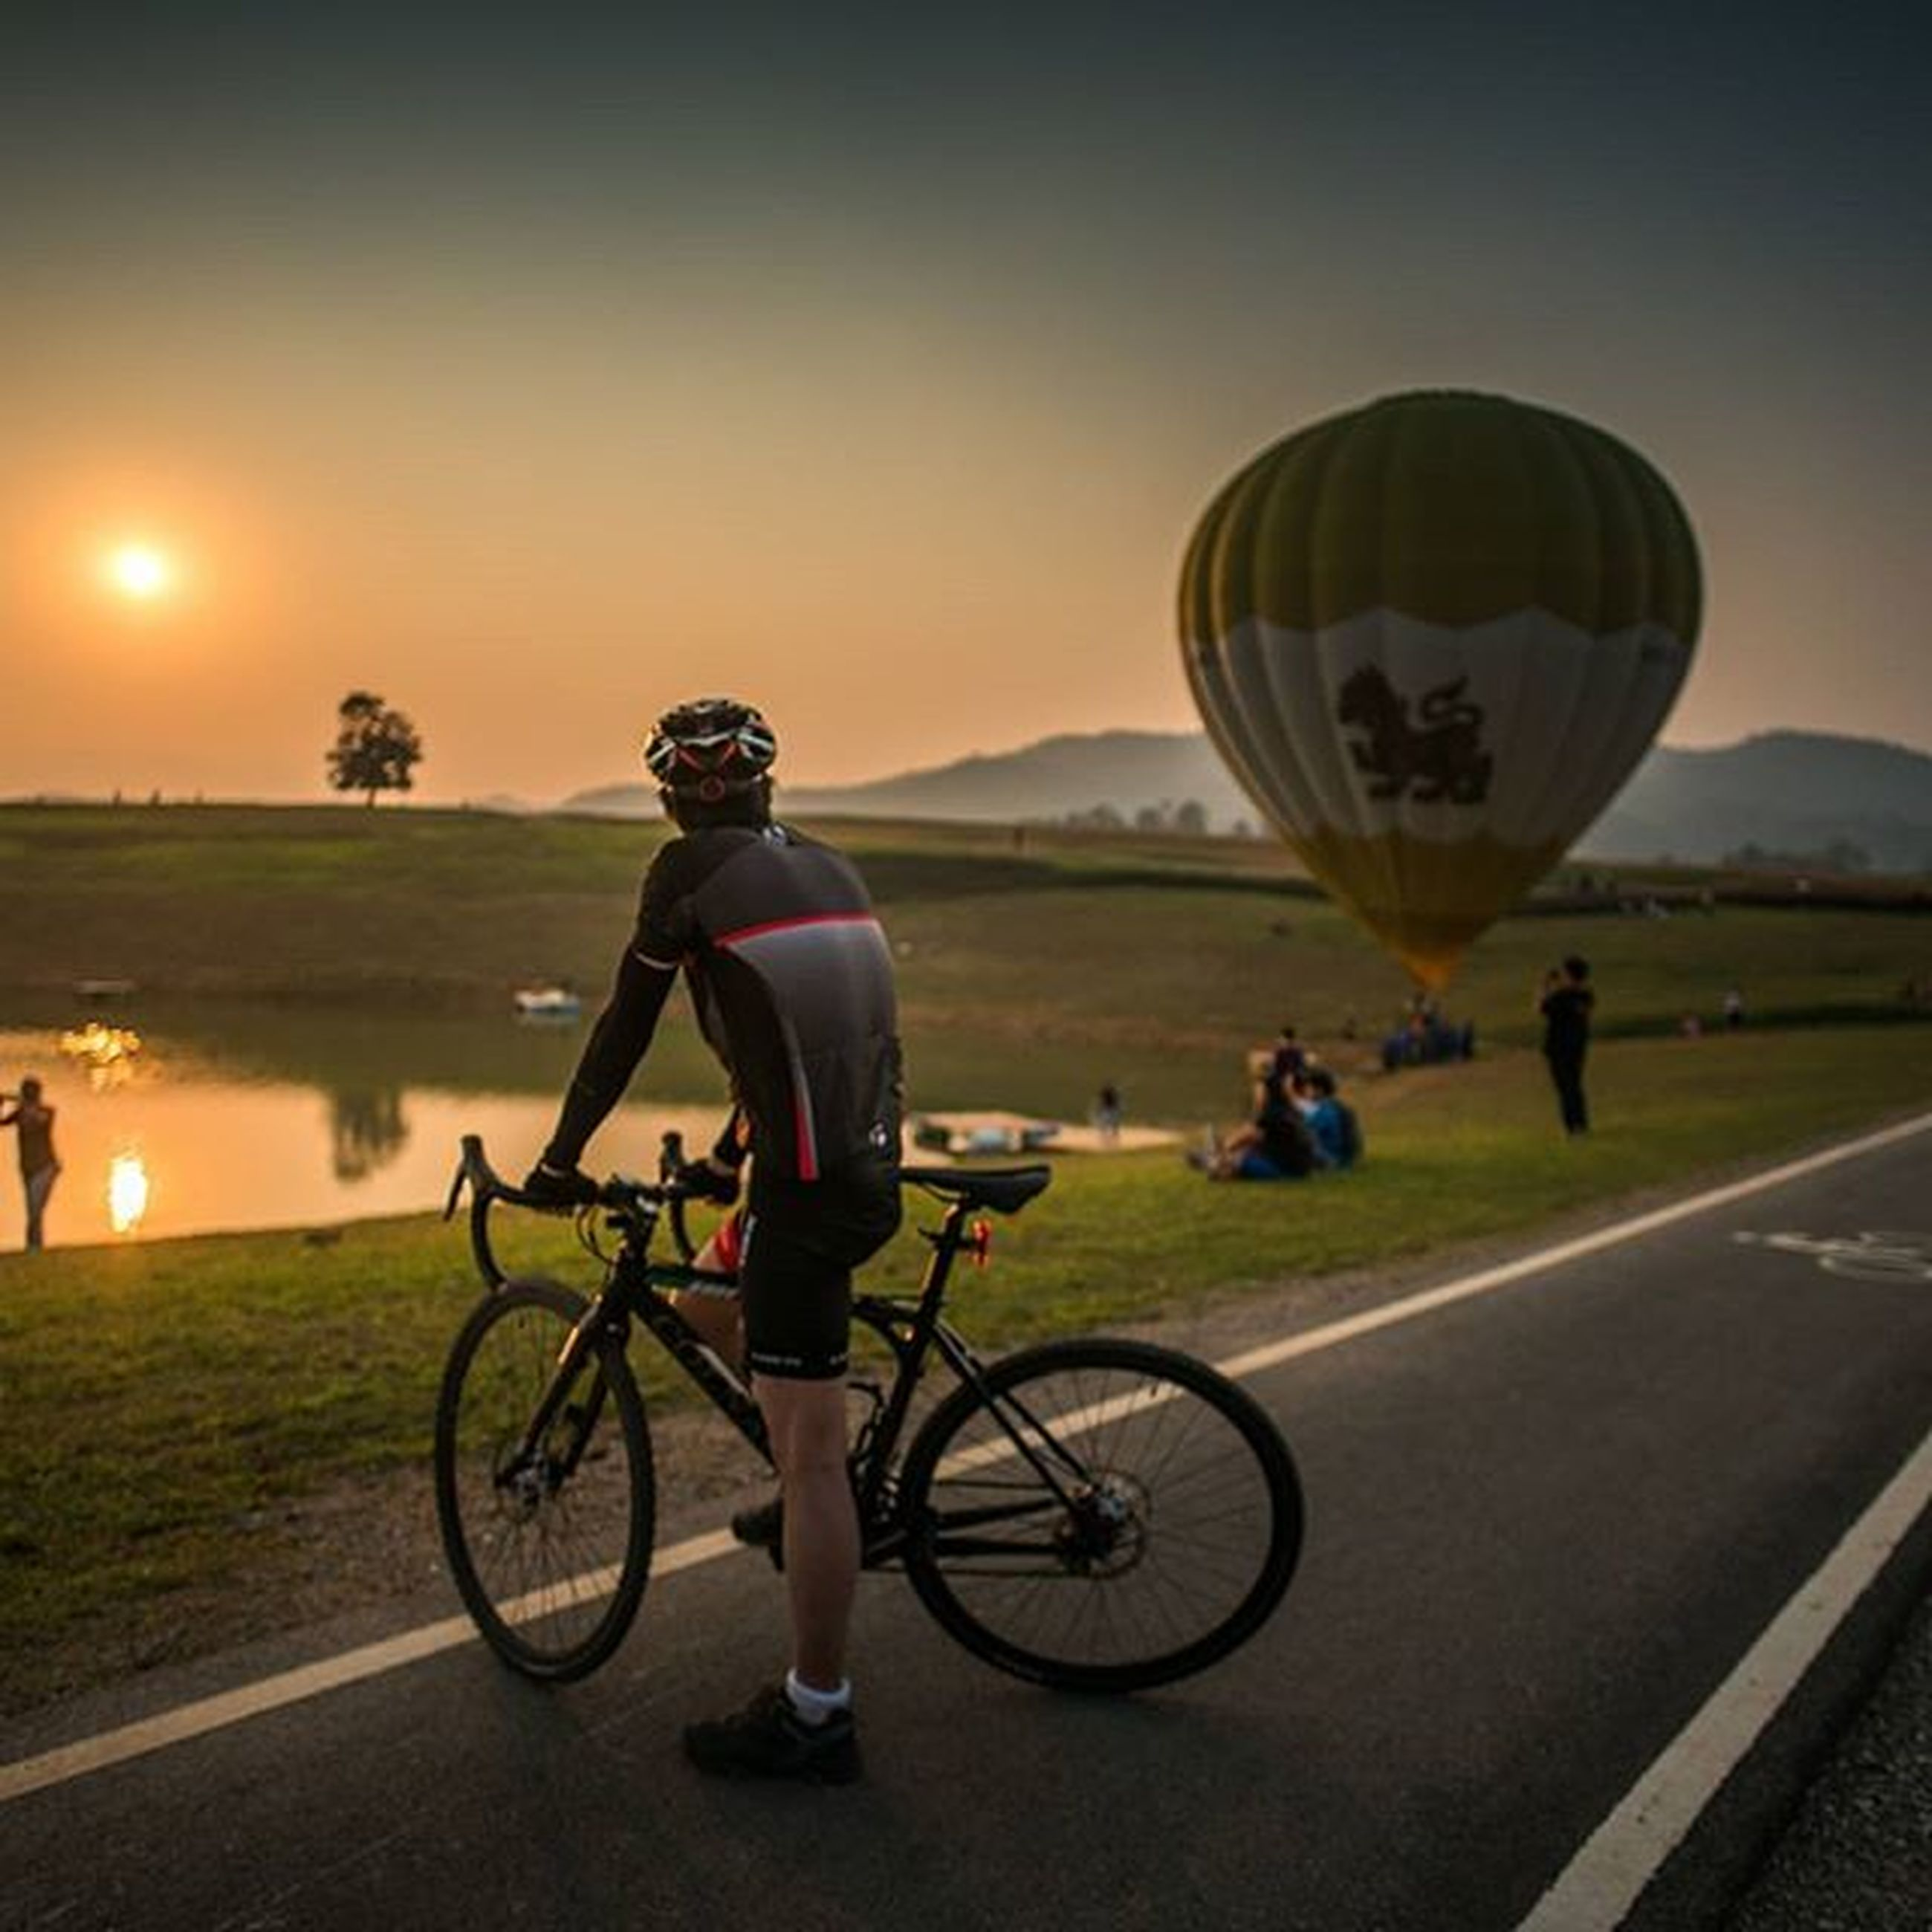 bicycle, transportation, land vehicle, mode of transport, riding, road, cycling, lifestyles, leisure activity, full length, men, street, grass, sky, on the move, travel, sport, road marking